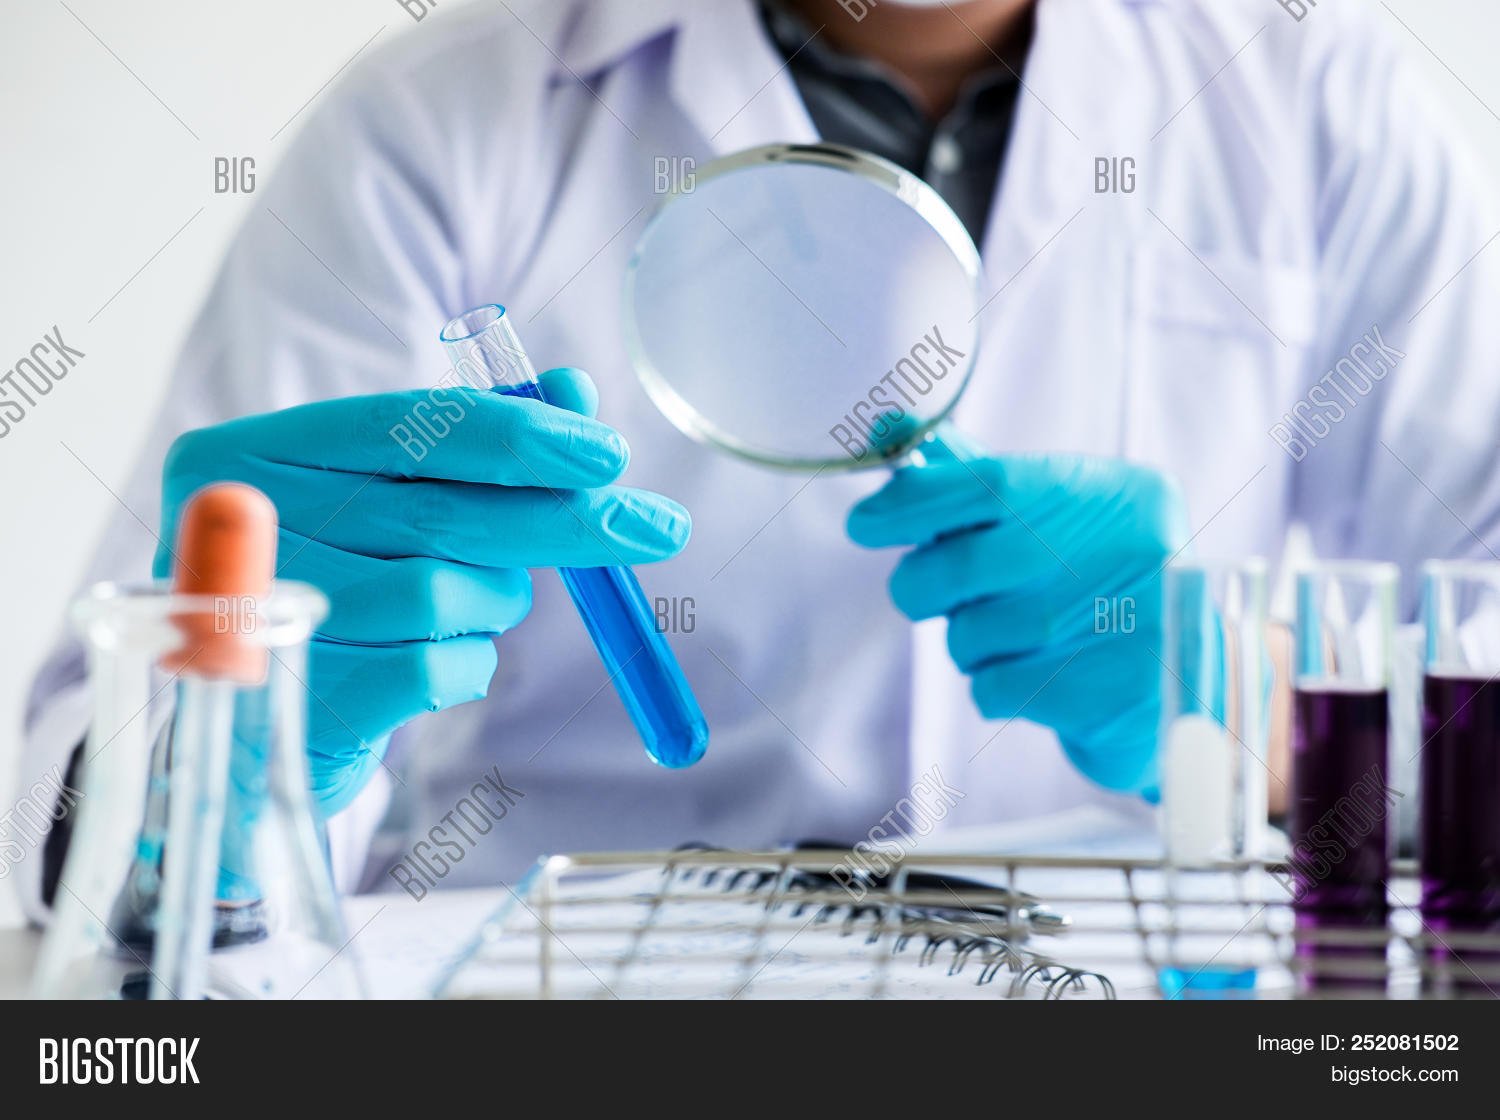 analysis,analyzing,beaker,biochemistry,biohazard,biotechnology,blue,chemical,chemist,chemistry,compound,development,discovery,doctor,education,equipment,experiment,expertise,flask,fluid,glasses,glassware,hand,health,healthcare,investigation,lab,laboratory,liquid,looking,man,medical,medicine,pharmaceutical,pipette,professional,reagent,report,research,researcher,sample,science,scientific,scientist,substance,technician,technology,test,tube